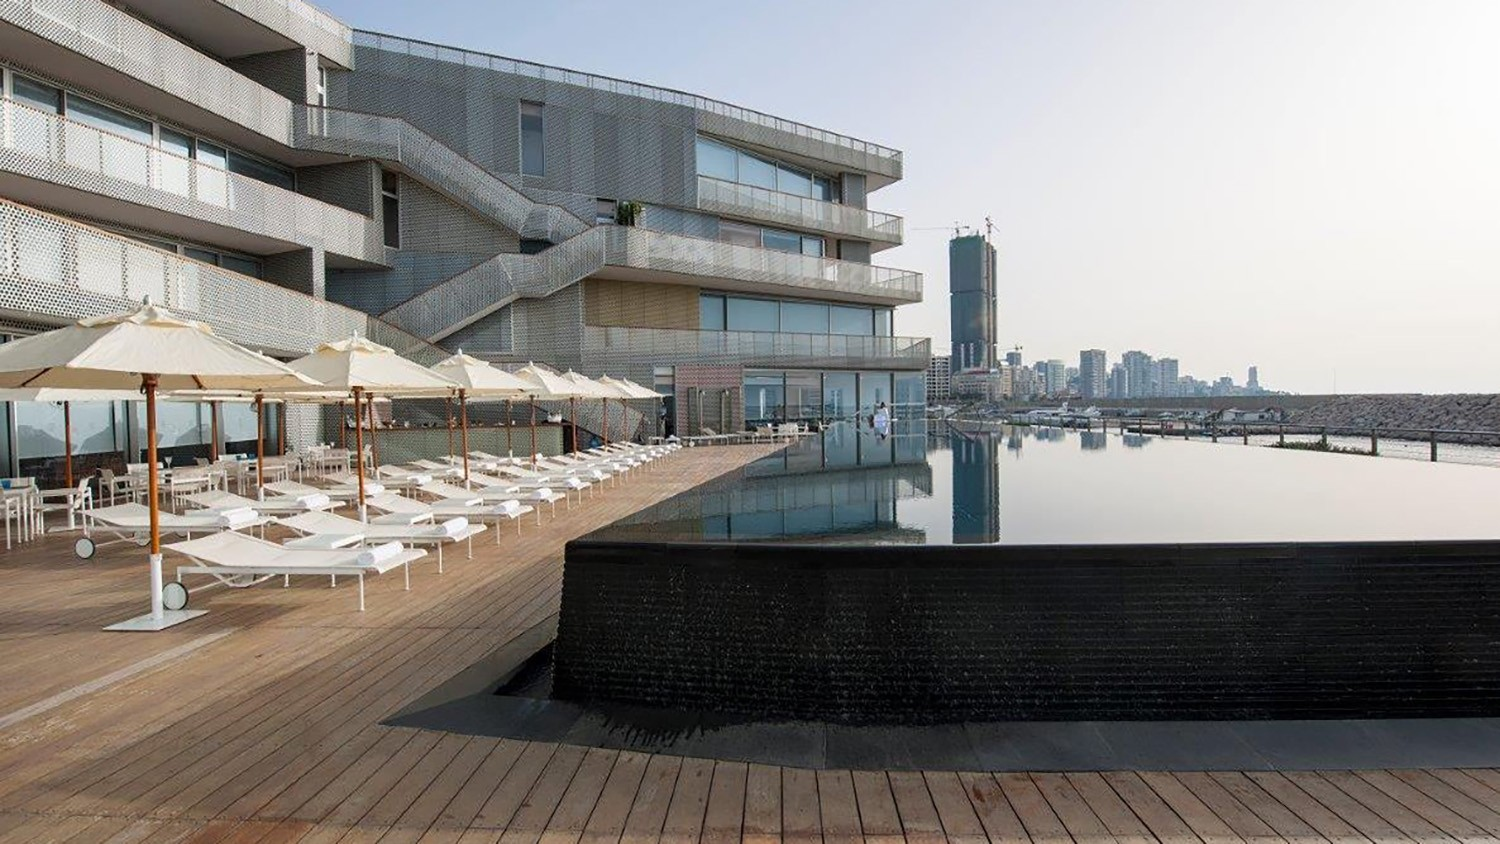 https://s3.us-east-2.amazonaws.com/steven-holl/uploads/projects/project-images/LeYachtClub_Beirut_Pooldeck_7_WH.jpg